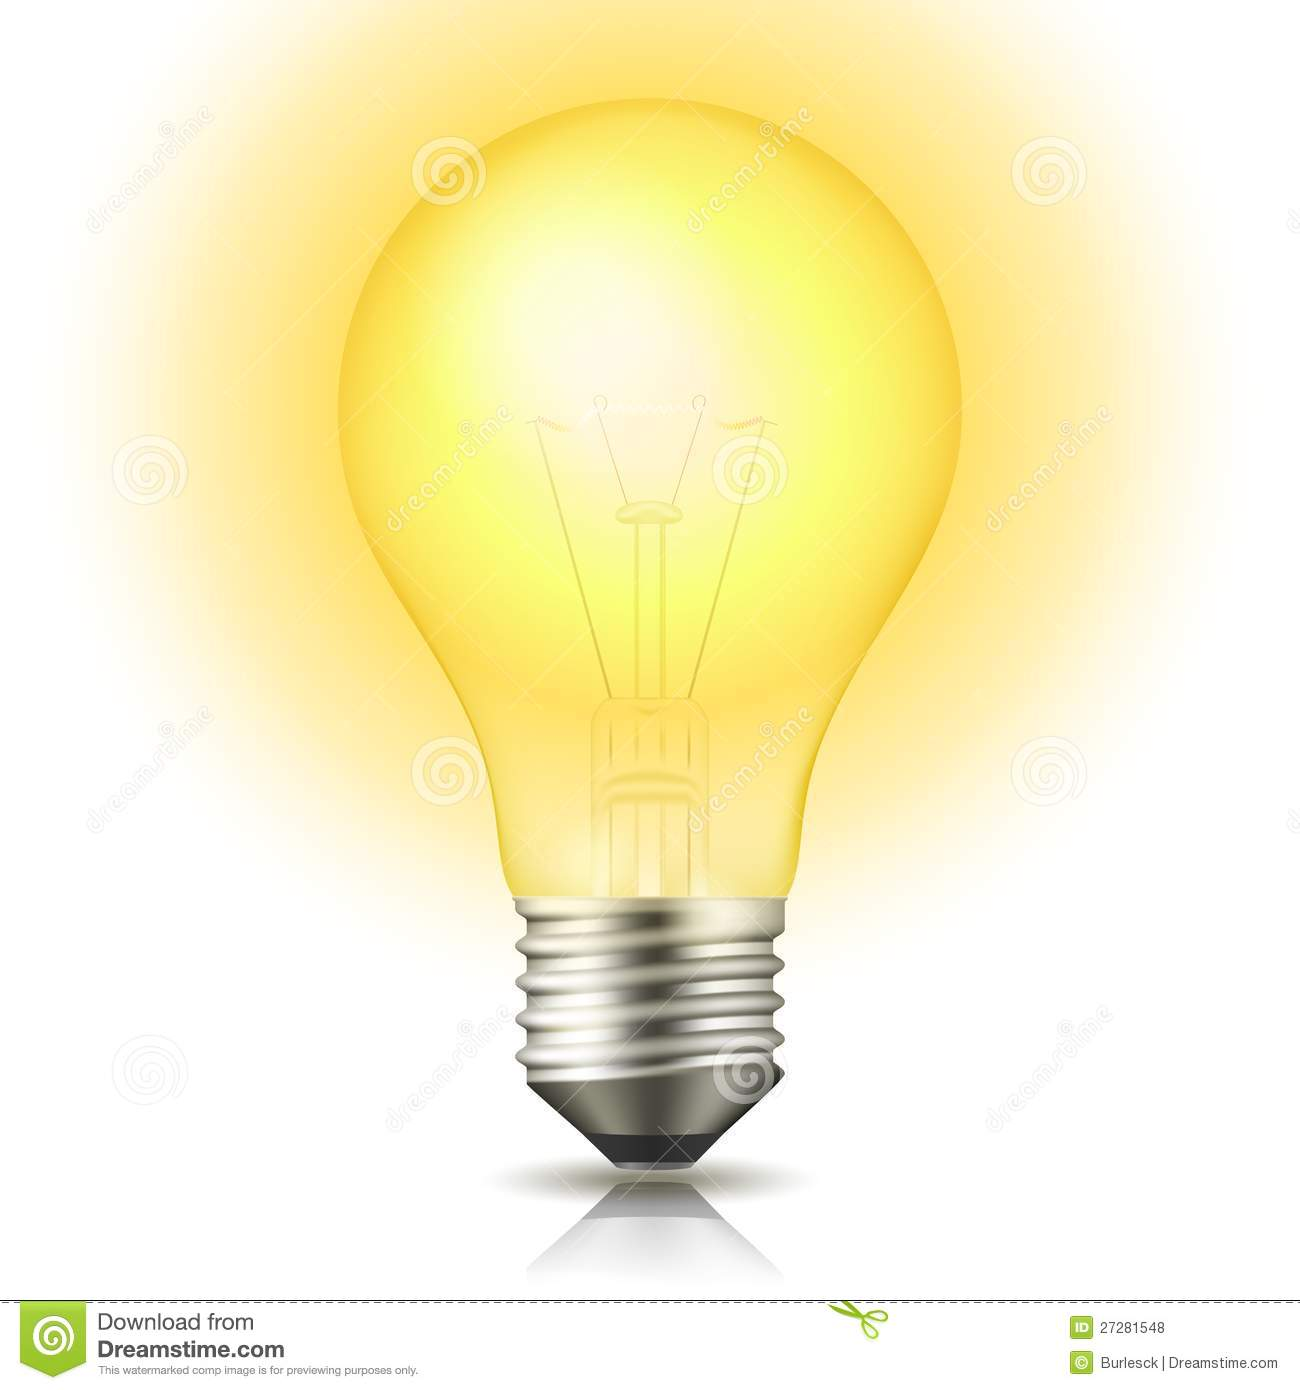 Lit Light Bulb Stock Vector Image Of Inspiration